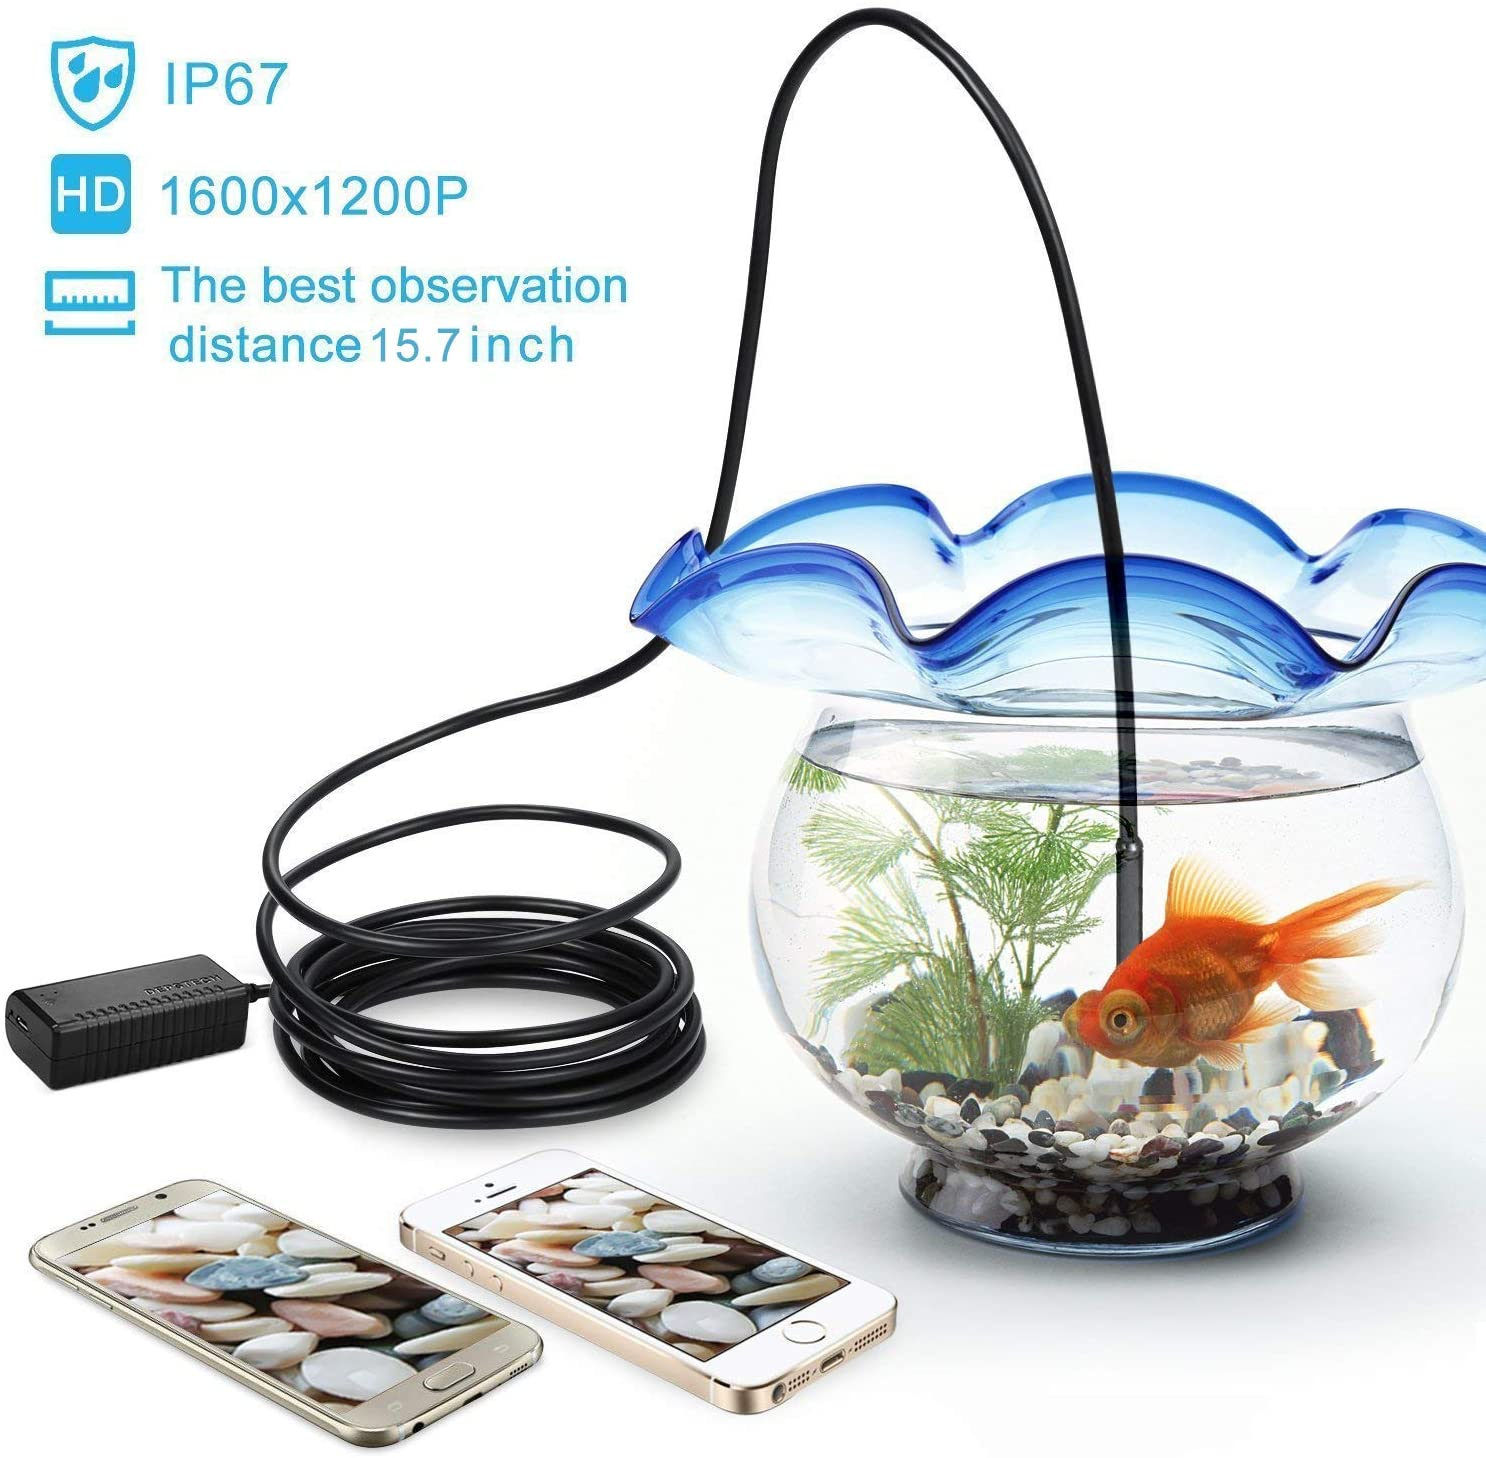 2.0 Megapixels Wireless Endoscope, IP67 Waterproof 11.5ft